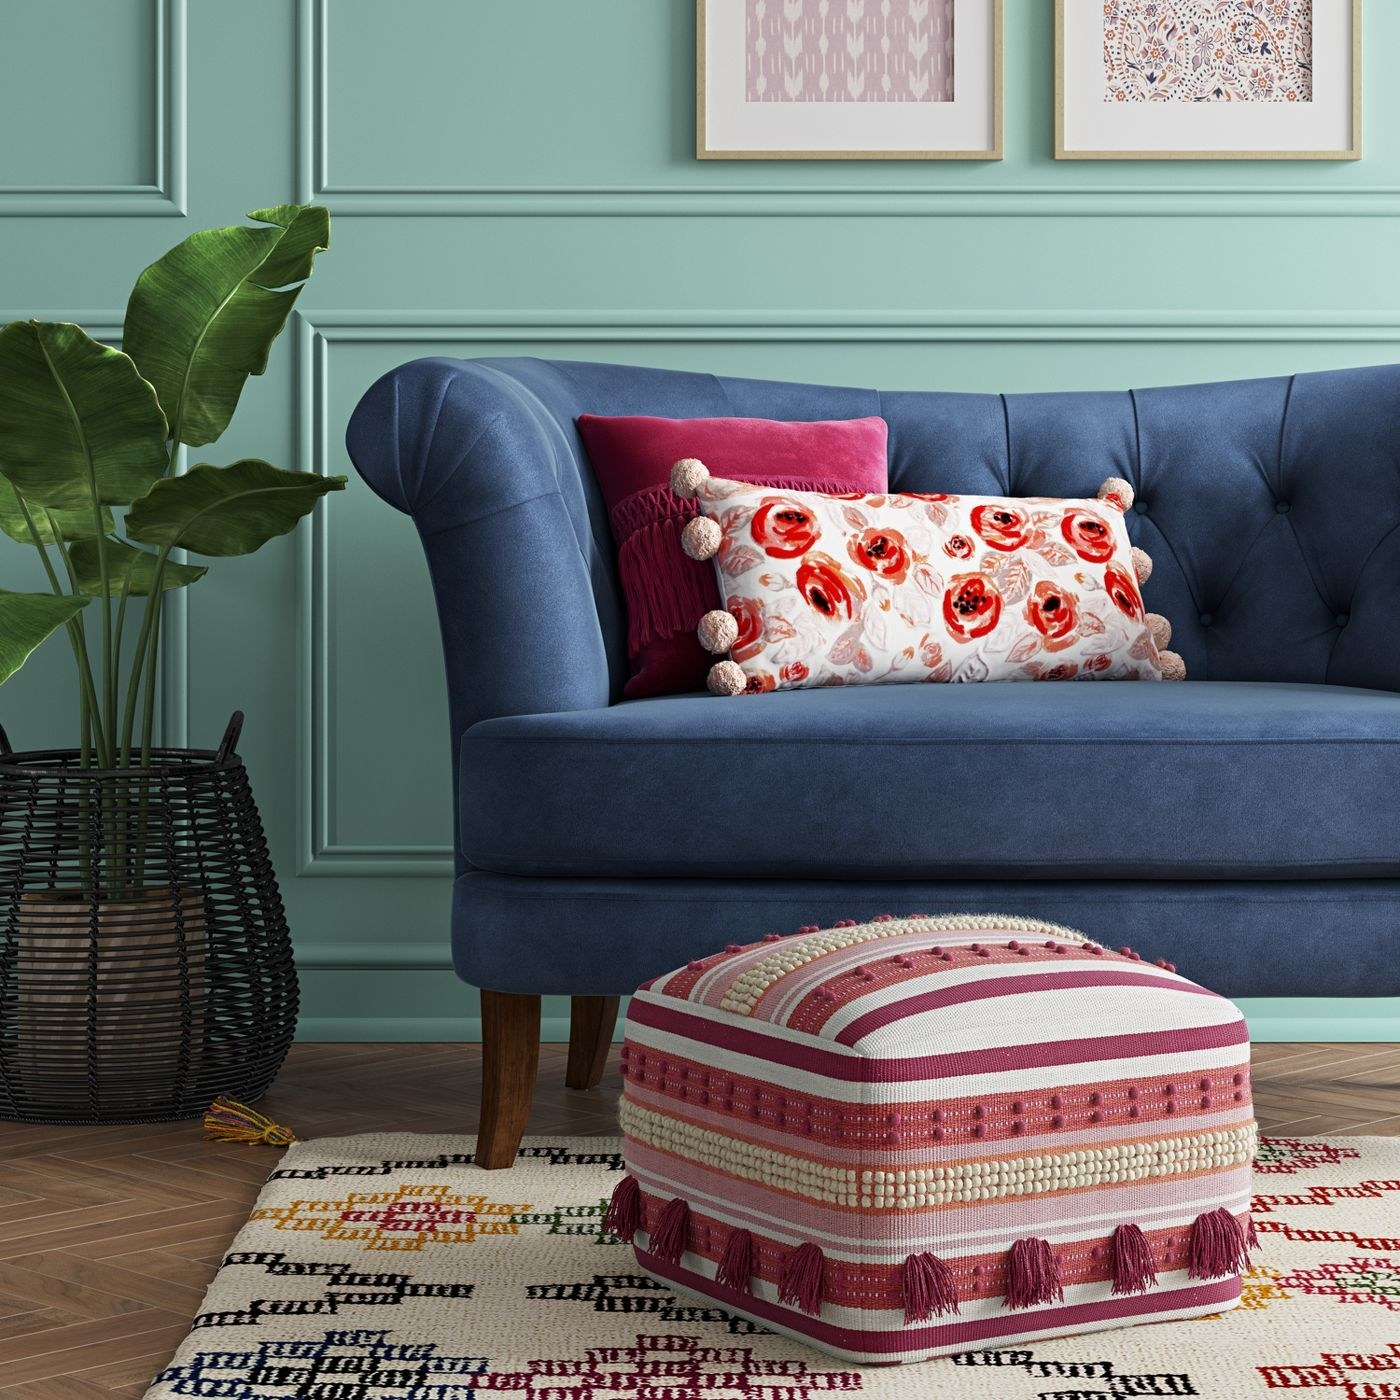 The pink and white pouf in a living room